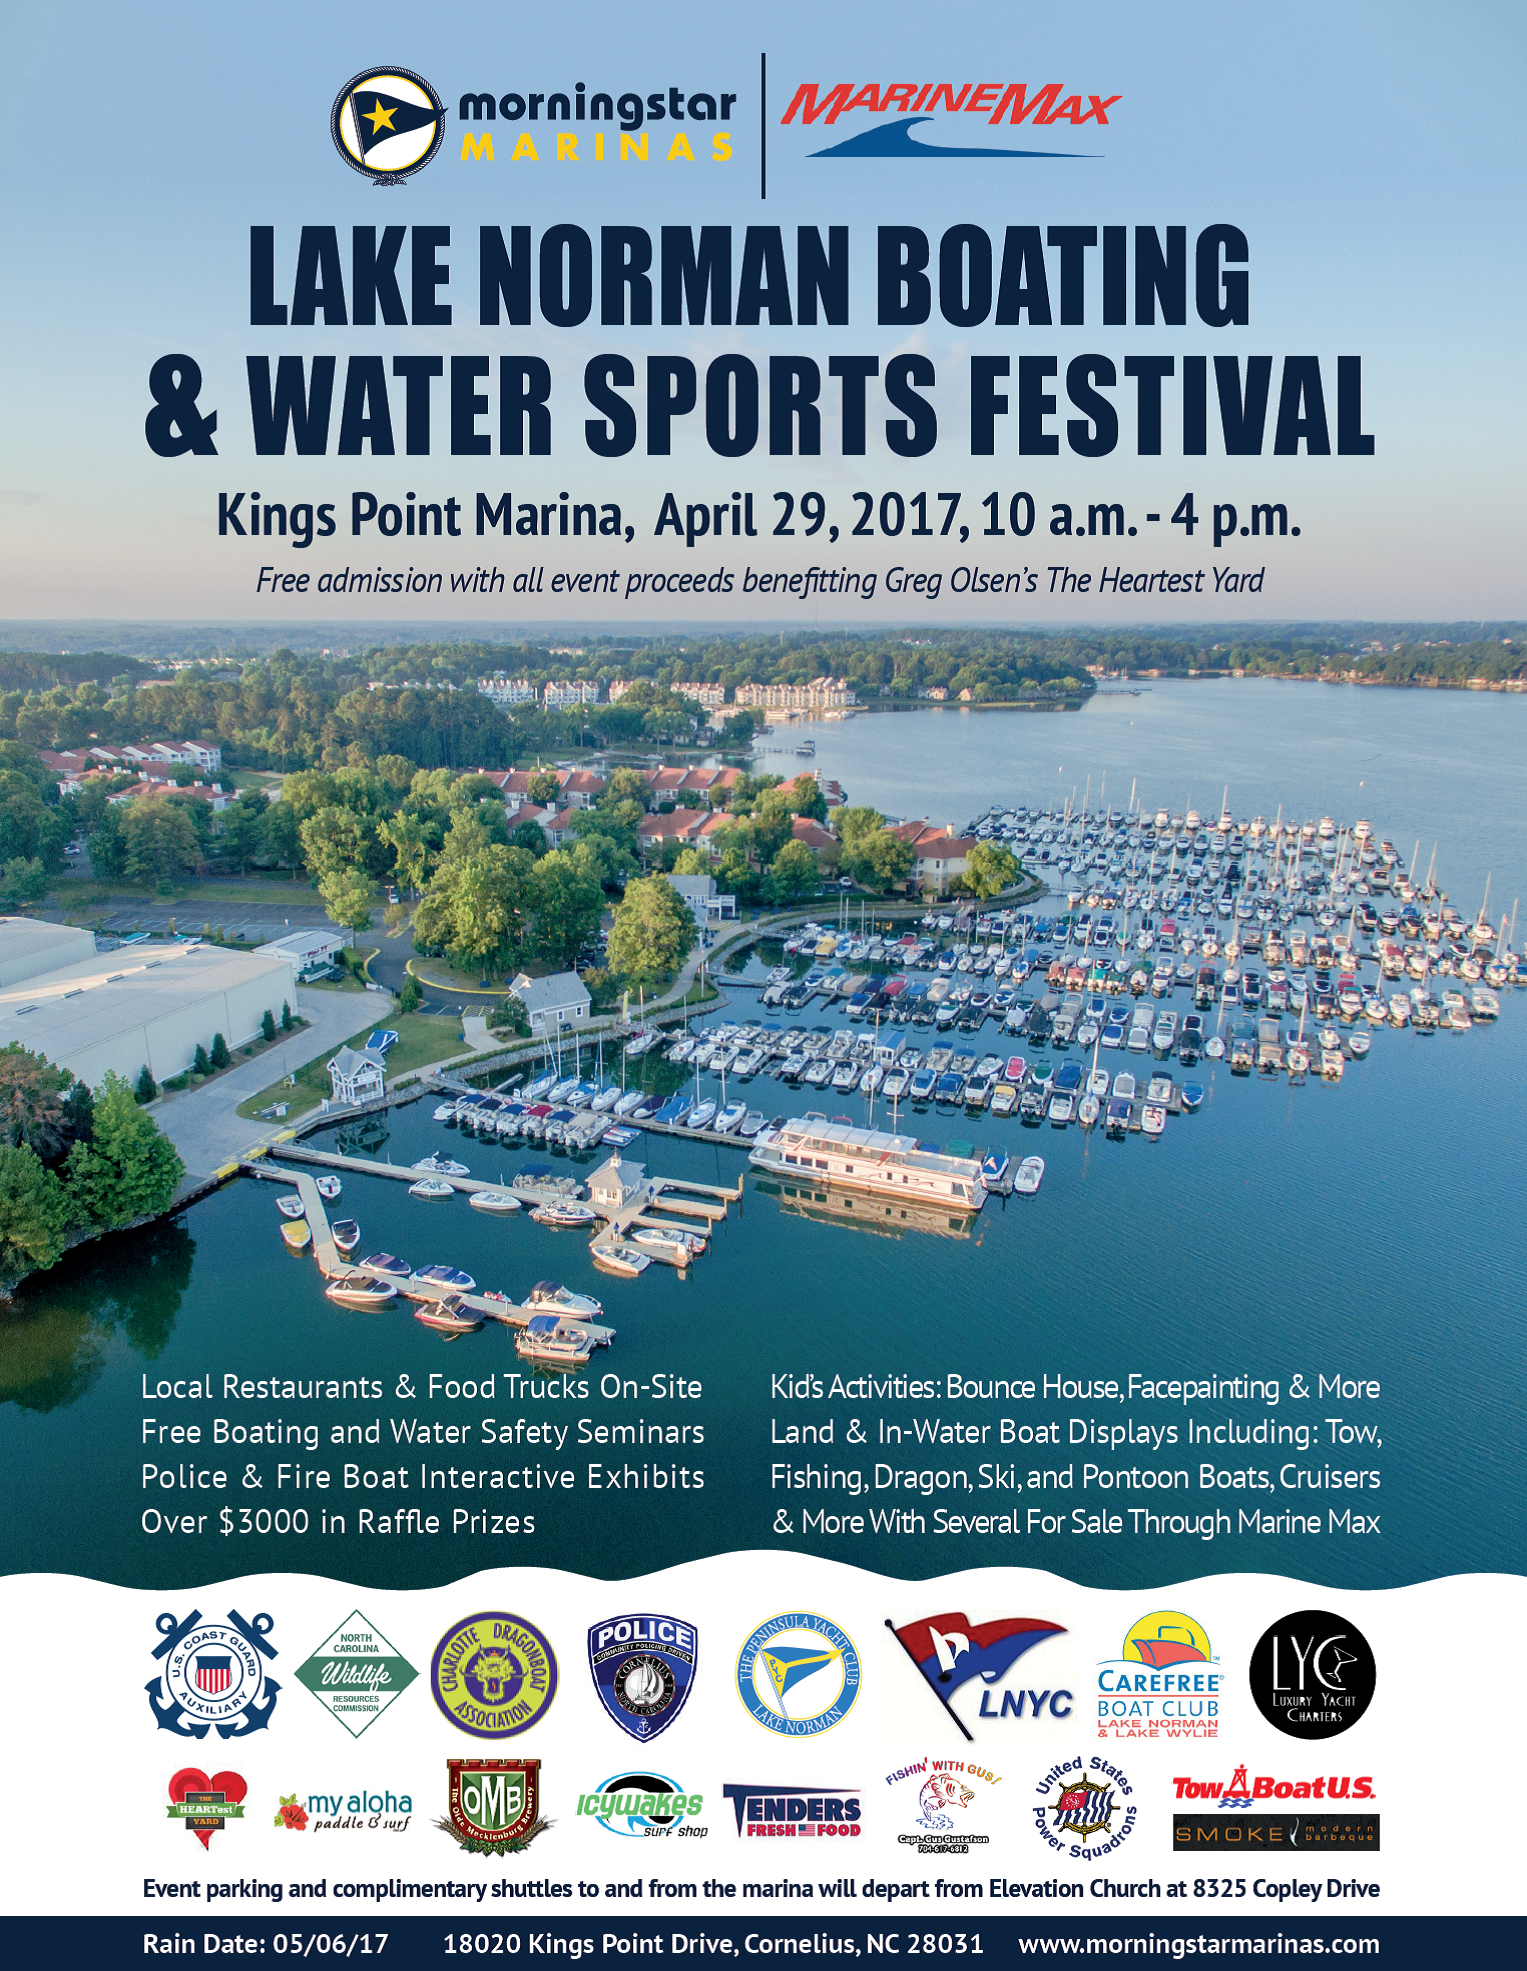 LKN Boating and Watersports Festival